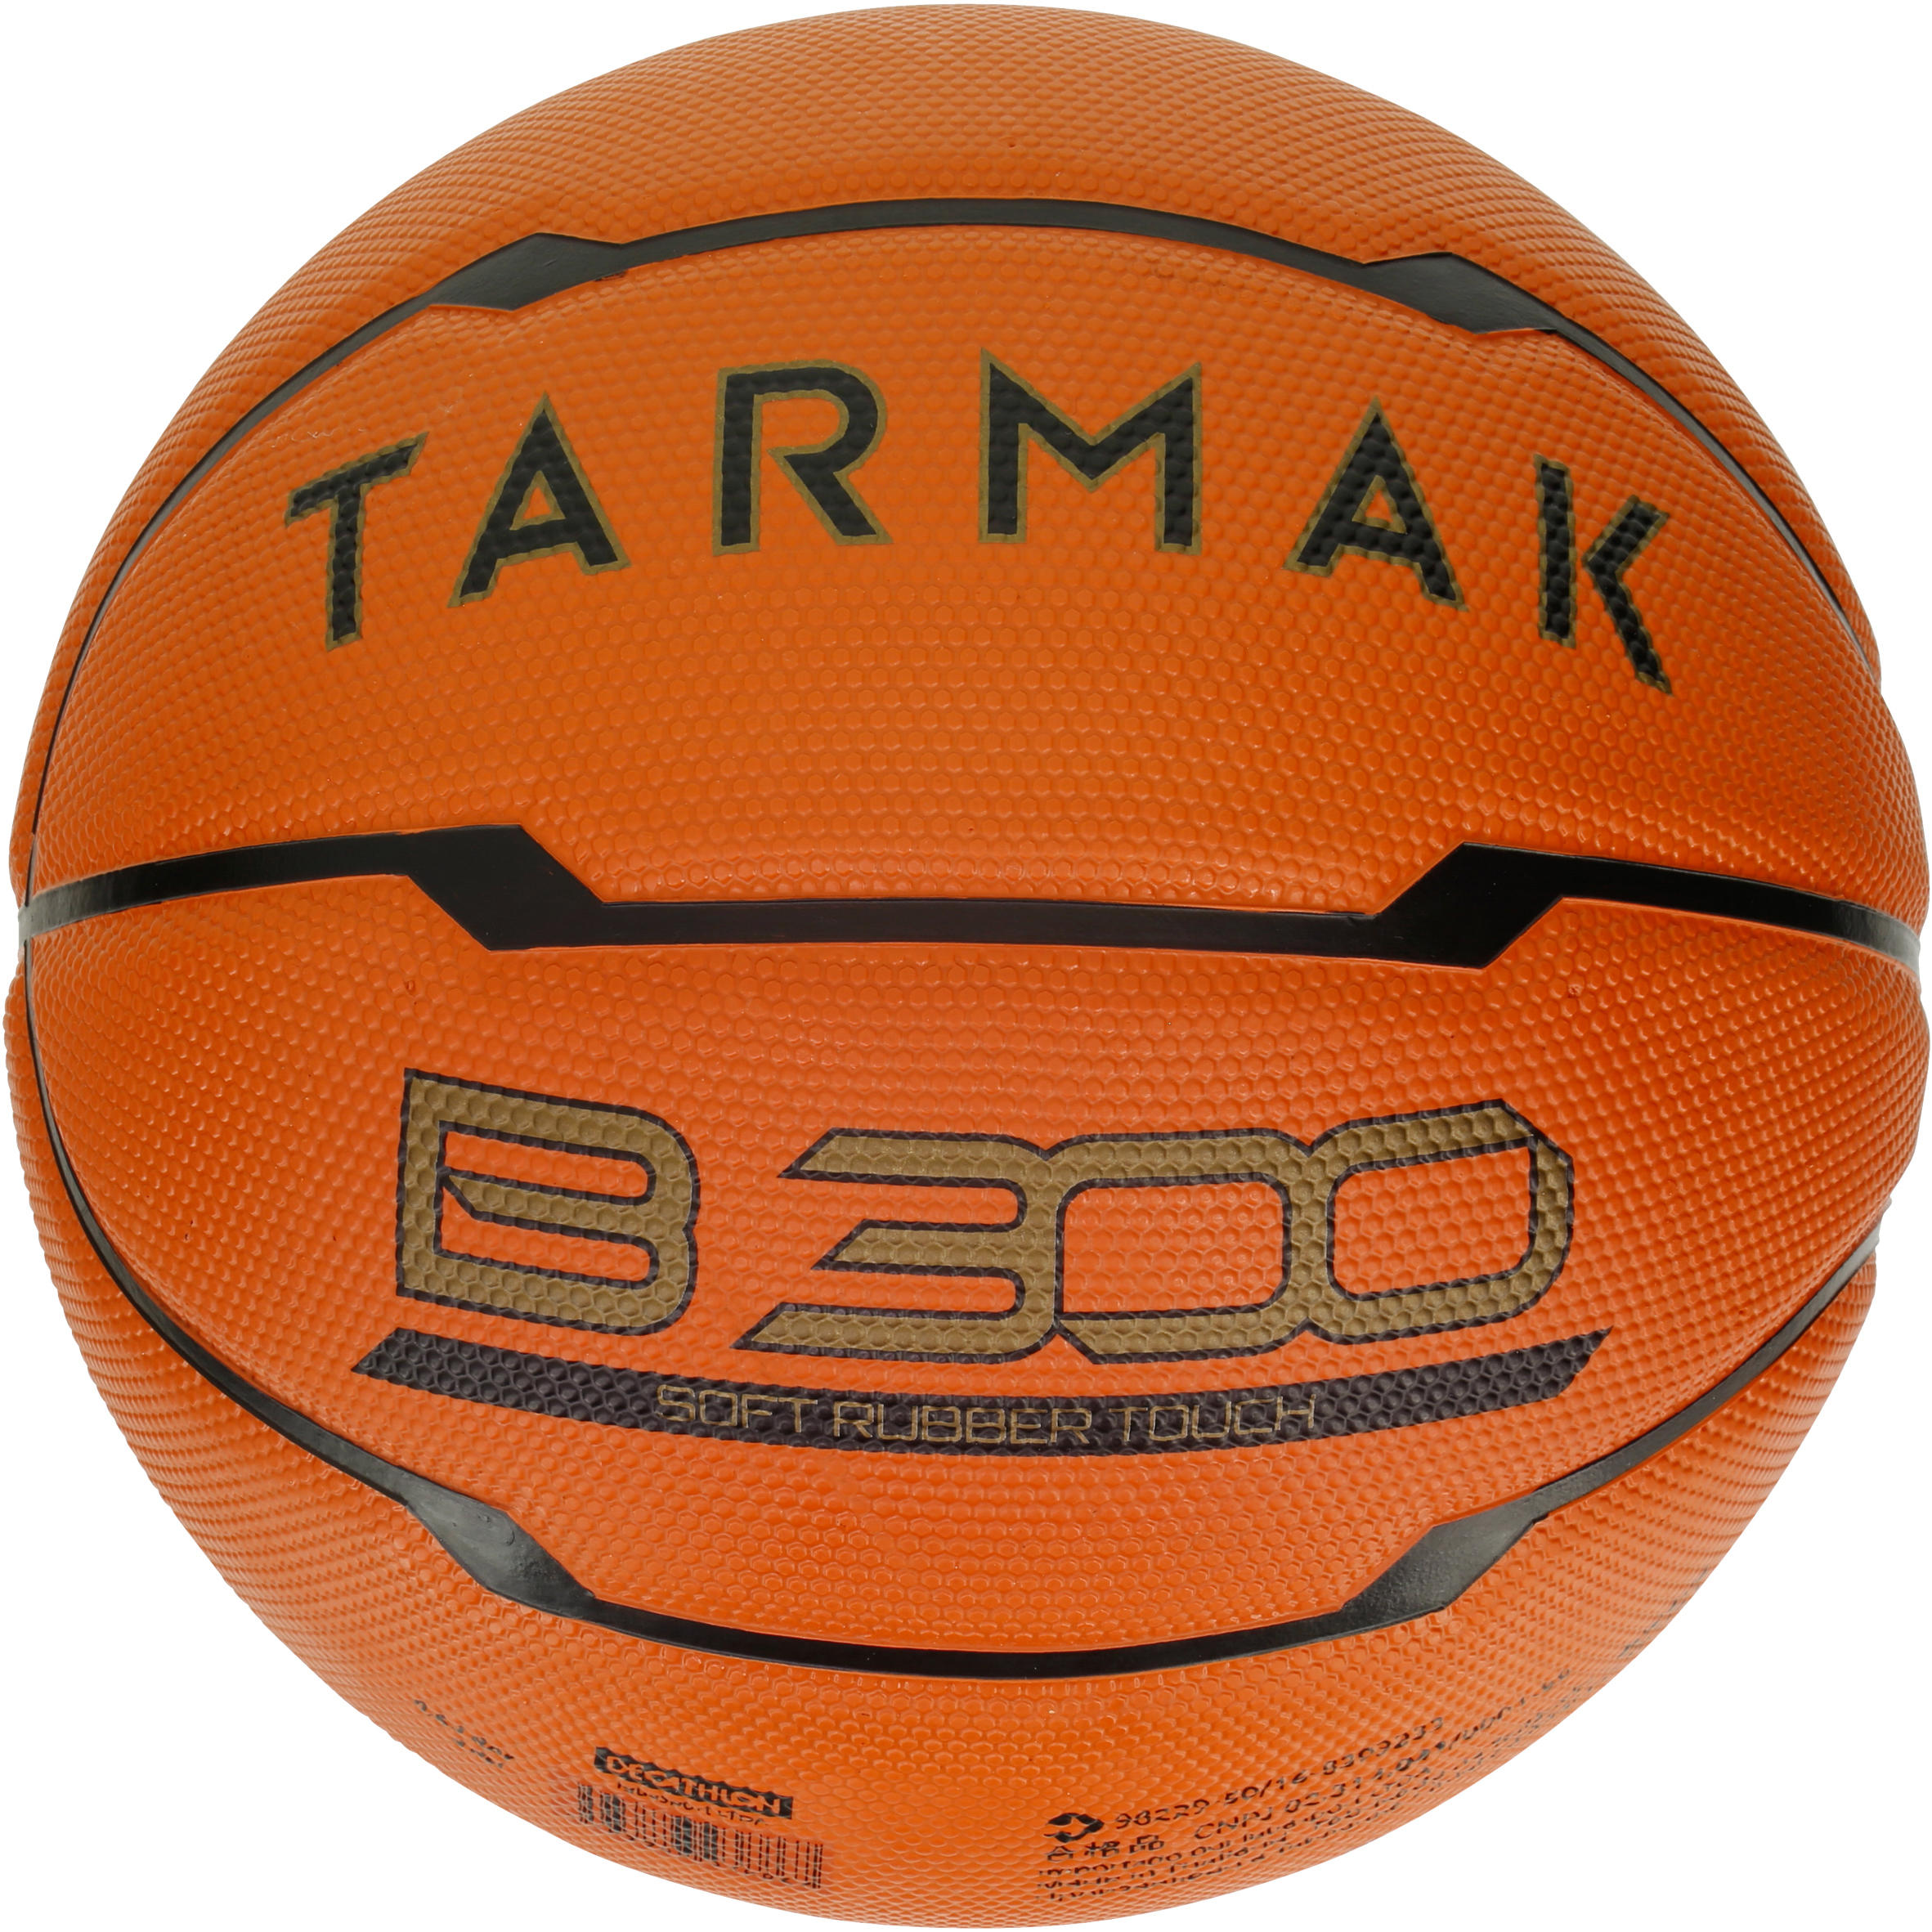 Ballon de basketball adulte B300 taille 7 orange